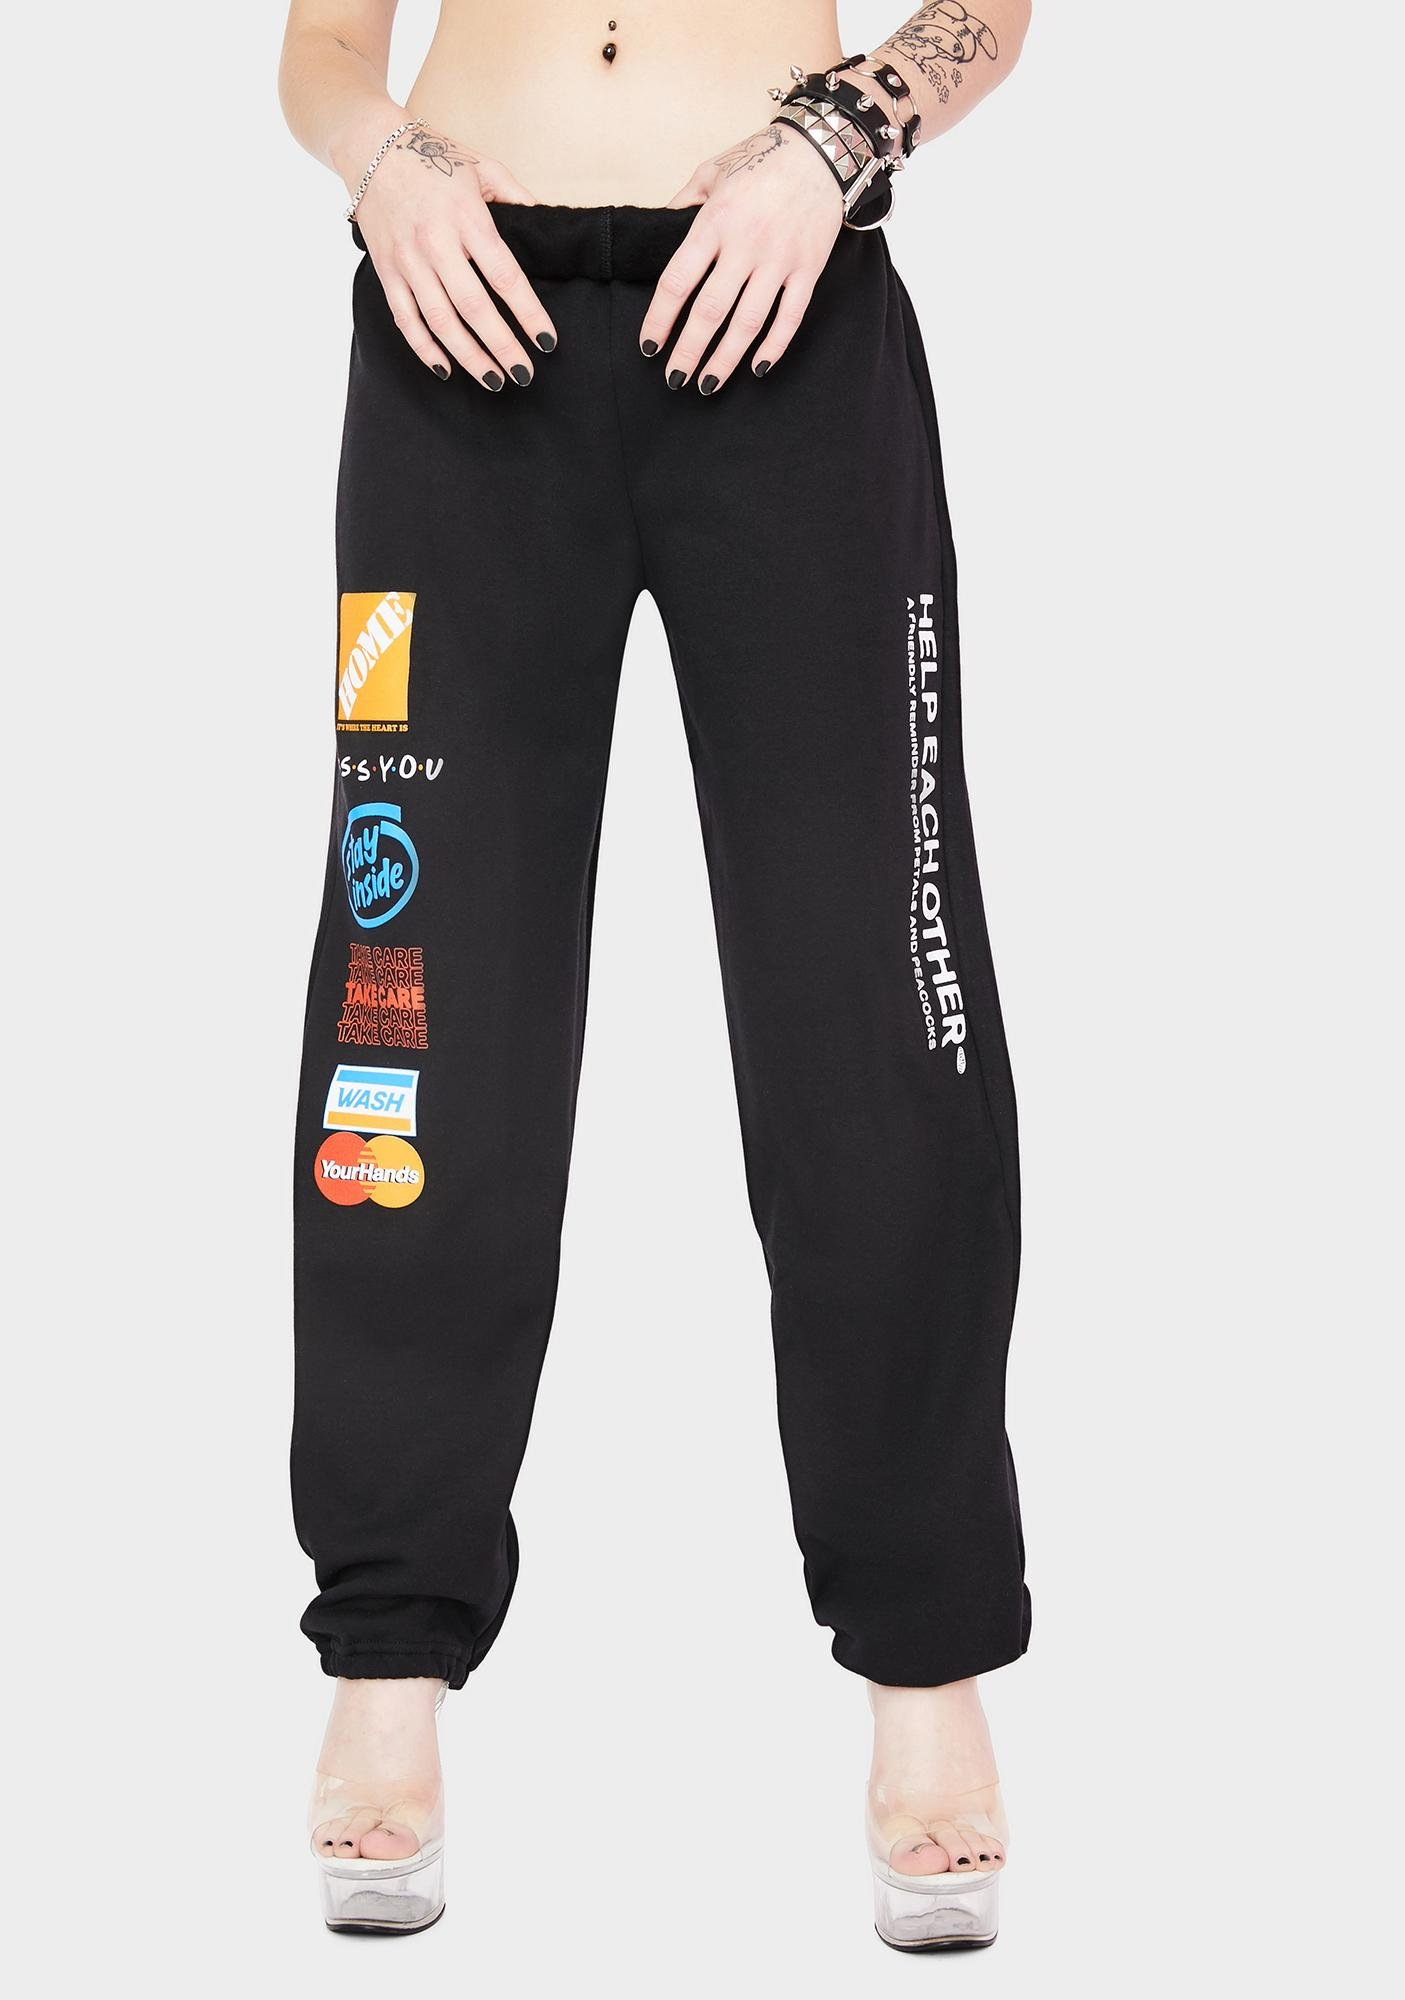 Petals and Peacocks Help Each Other Graphic Sweatpants